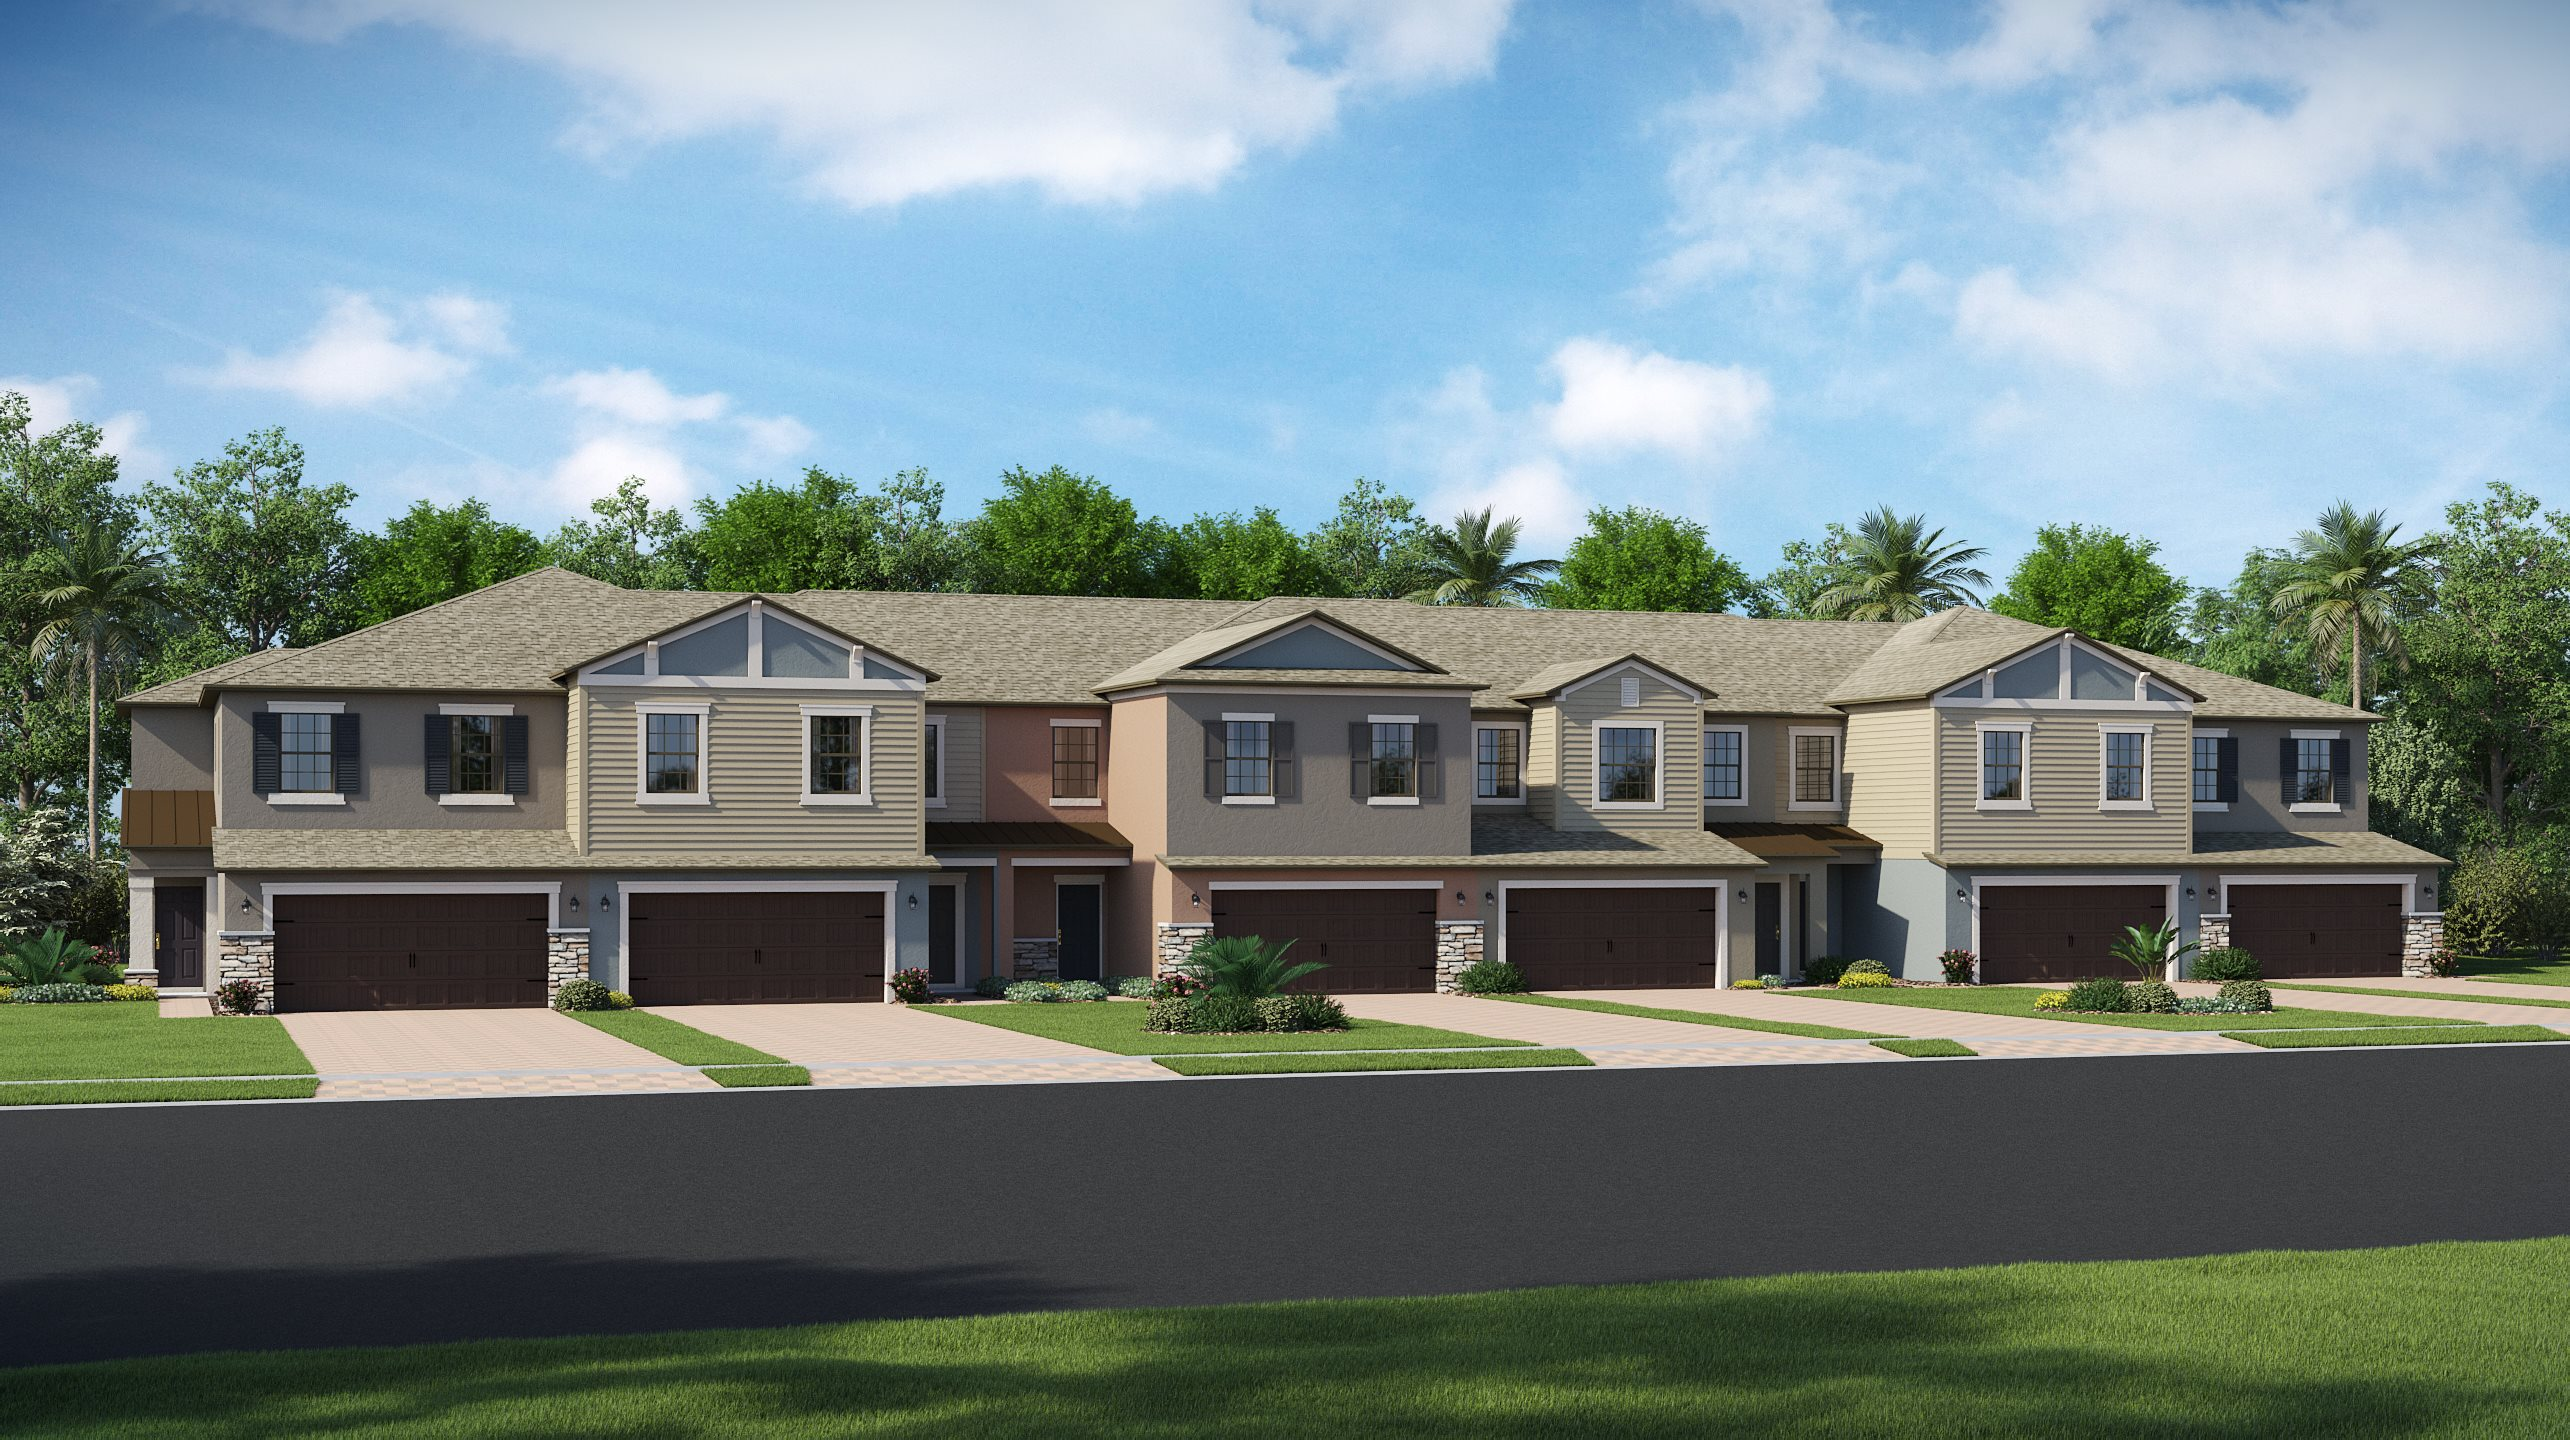 Willow - Townhomes - Palermo Exterior A